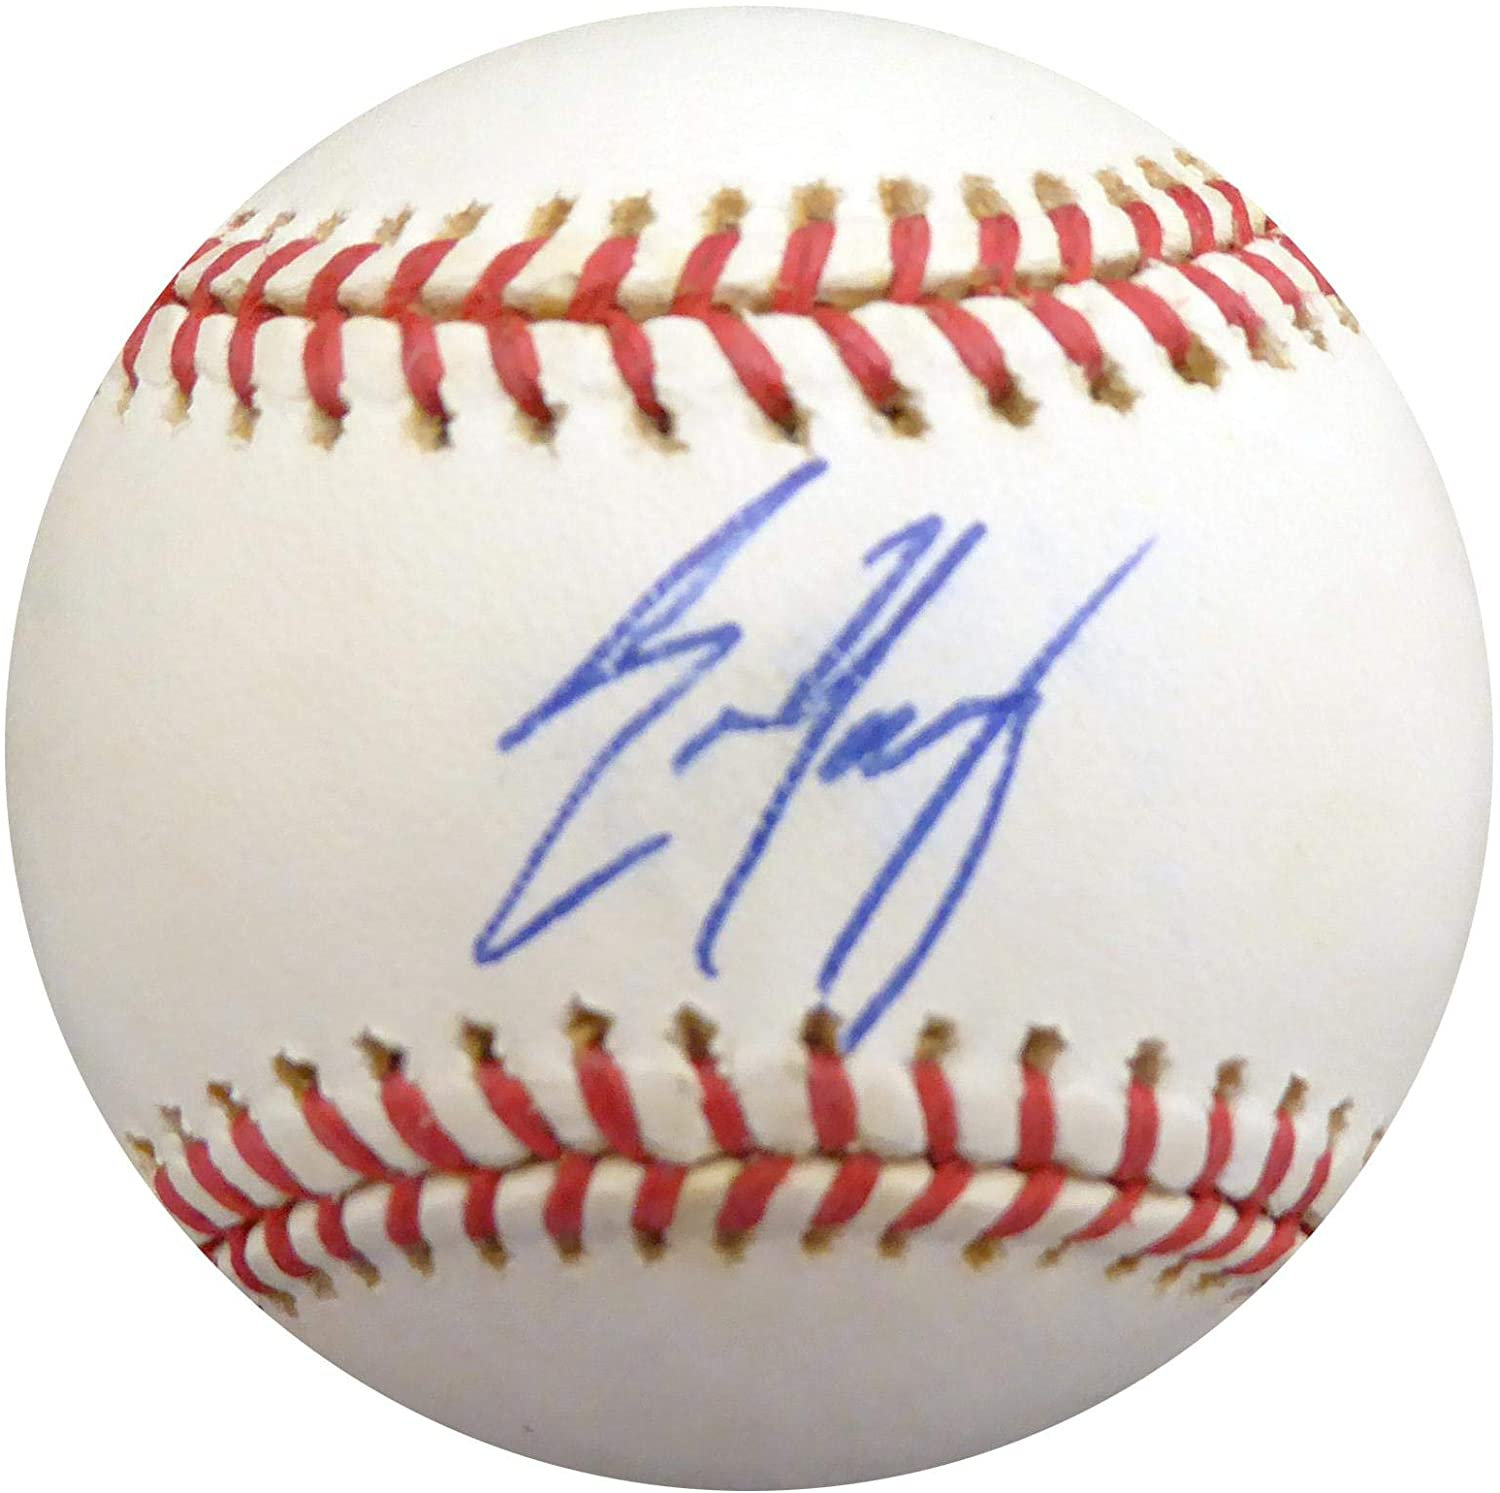 Eric Young Autographed Official NL Baseball Colorado Rockies Beckett BAS #S78618 - Beckett Authentication